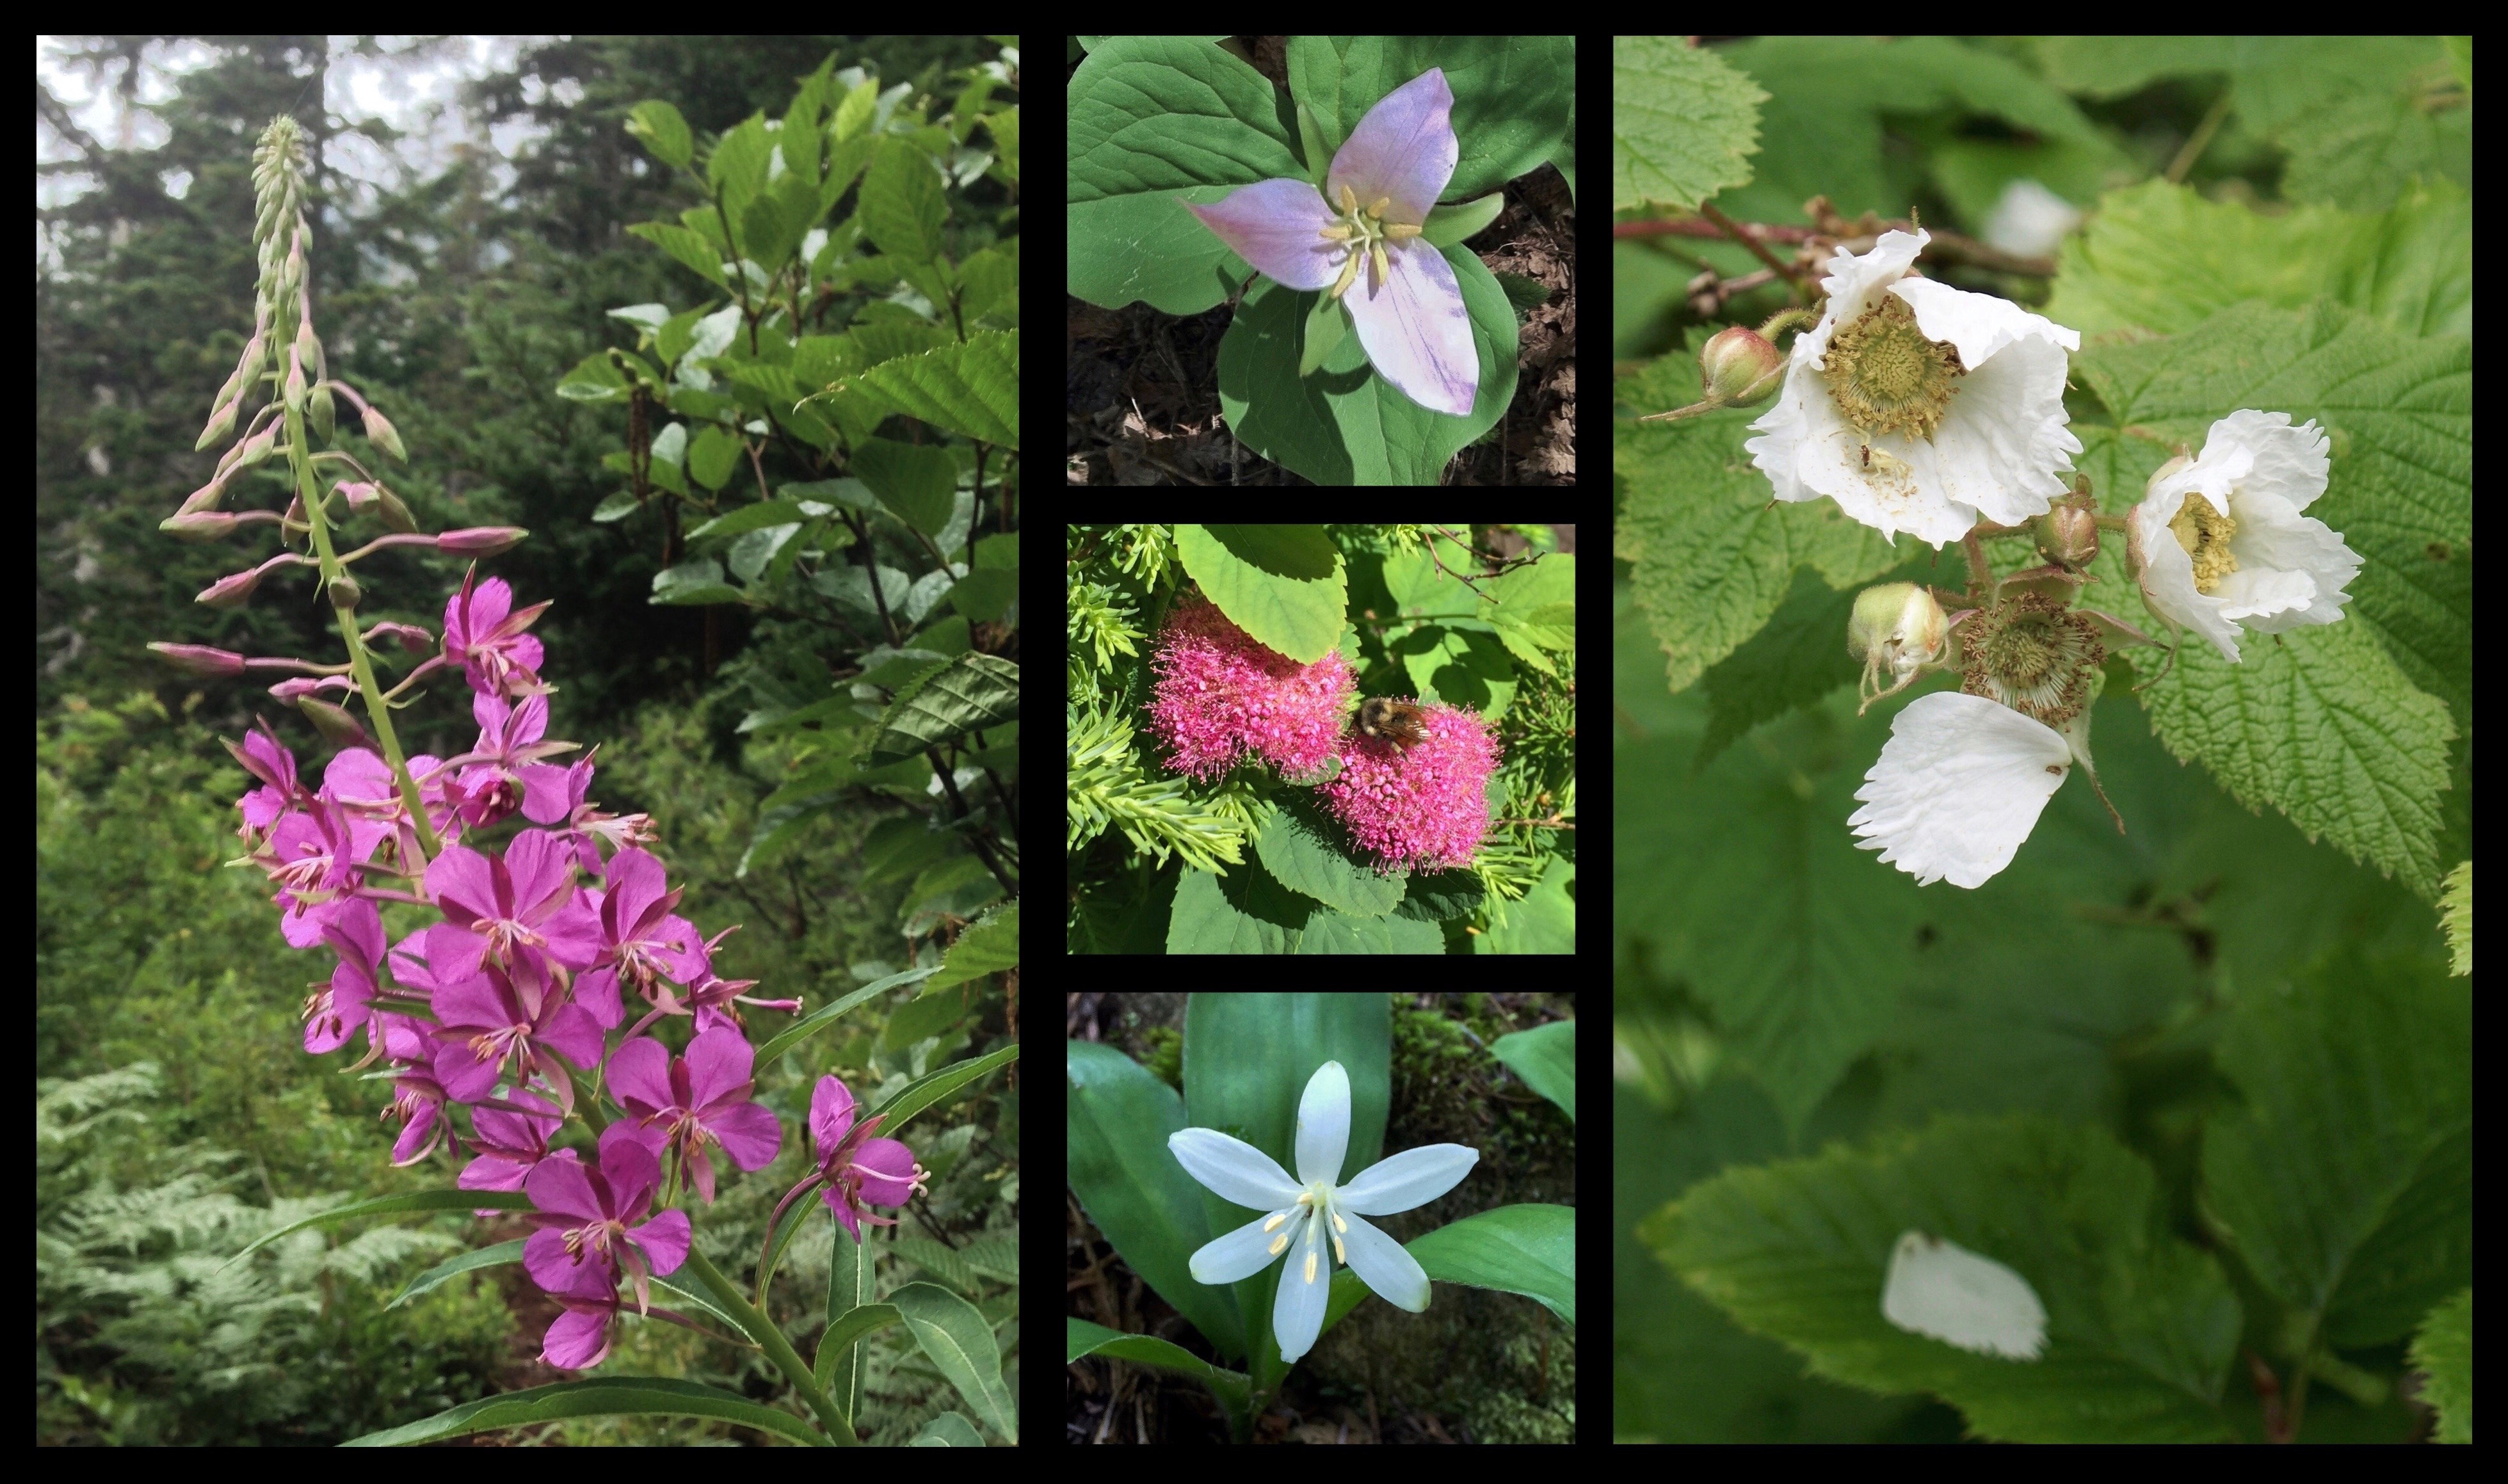 Other, more ordinary blooms also dot the forest, including lumbering spires of fireweed (Chamerion angustifolium) (left), delicately blushing Pacific trilliums (Trillium ovatum) (upper center), clove-scented subalpine spirea (Spiraea splendens) (center), elegantly nodding queen's cups (Clintonia uniflora) (lower center), and shyly shedding thimbleberries (Rubus parviflorus) (right). Annette Lake Trail, July 2010, 2011, and 2015 and August 2013.